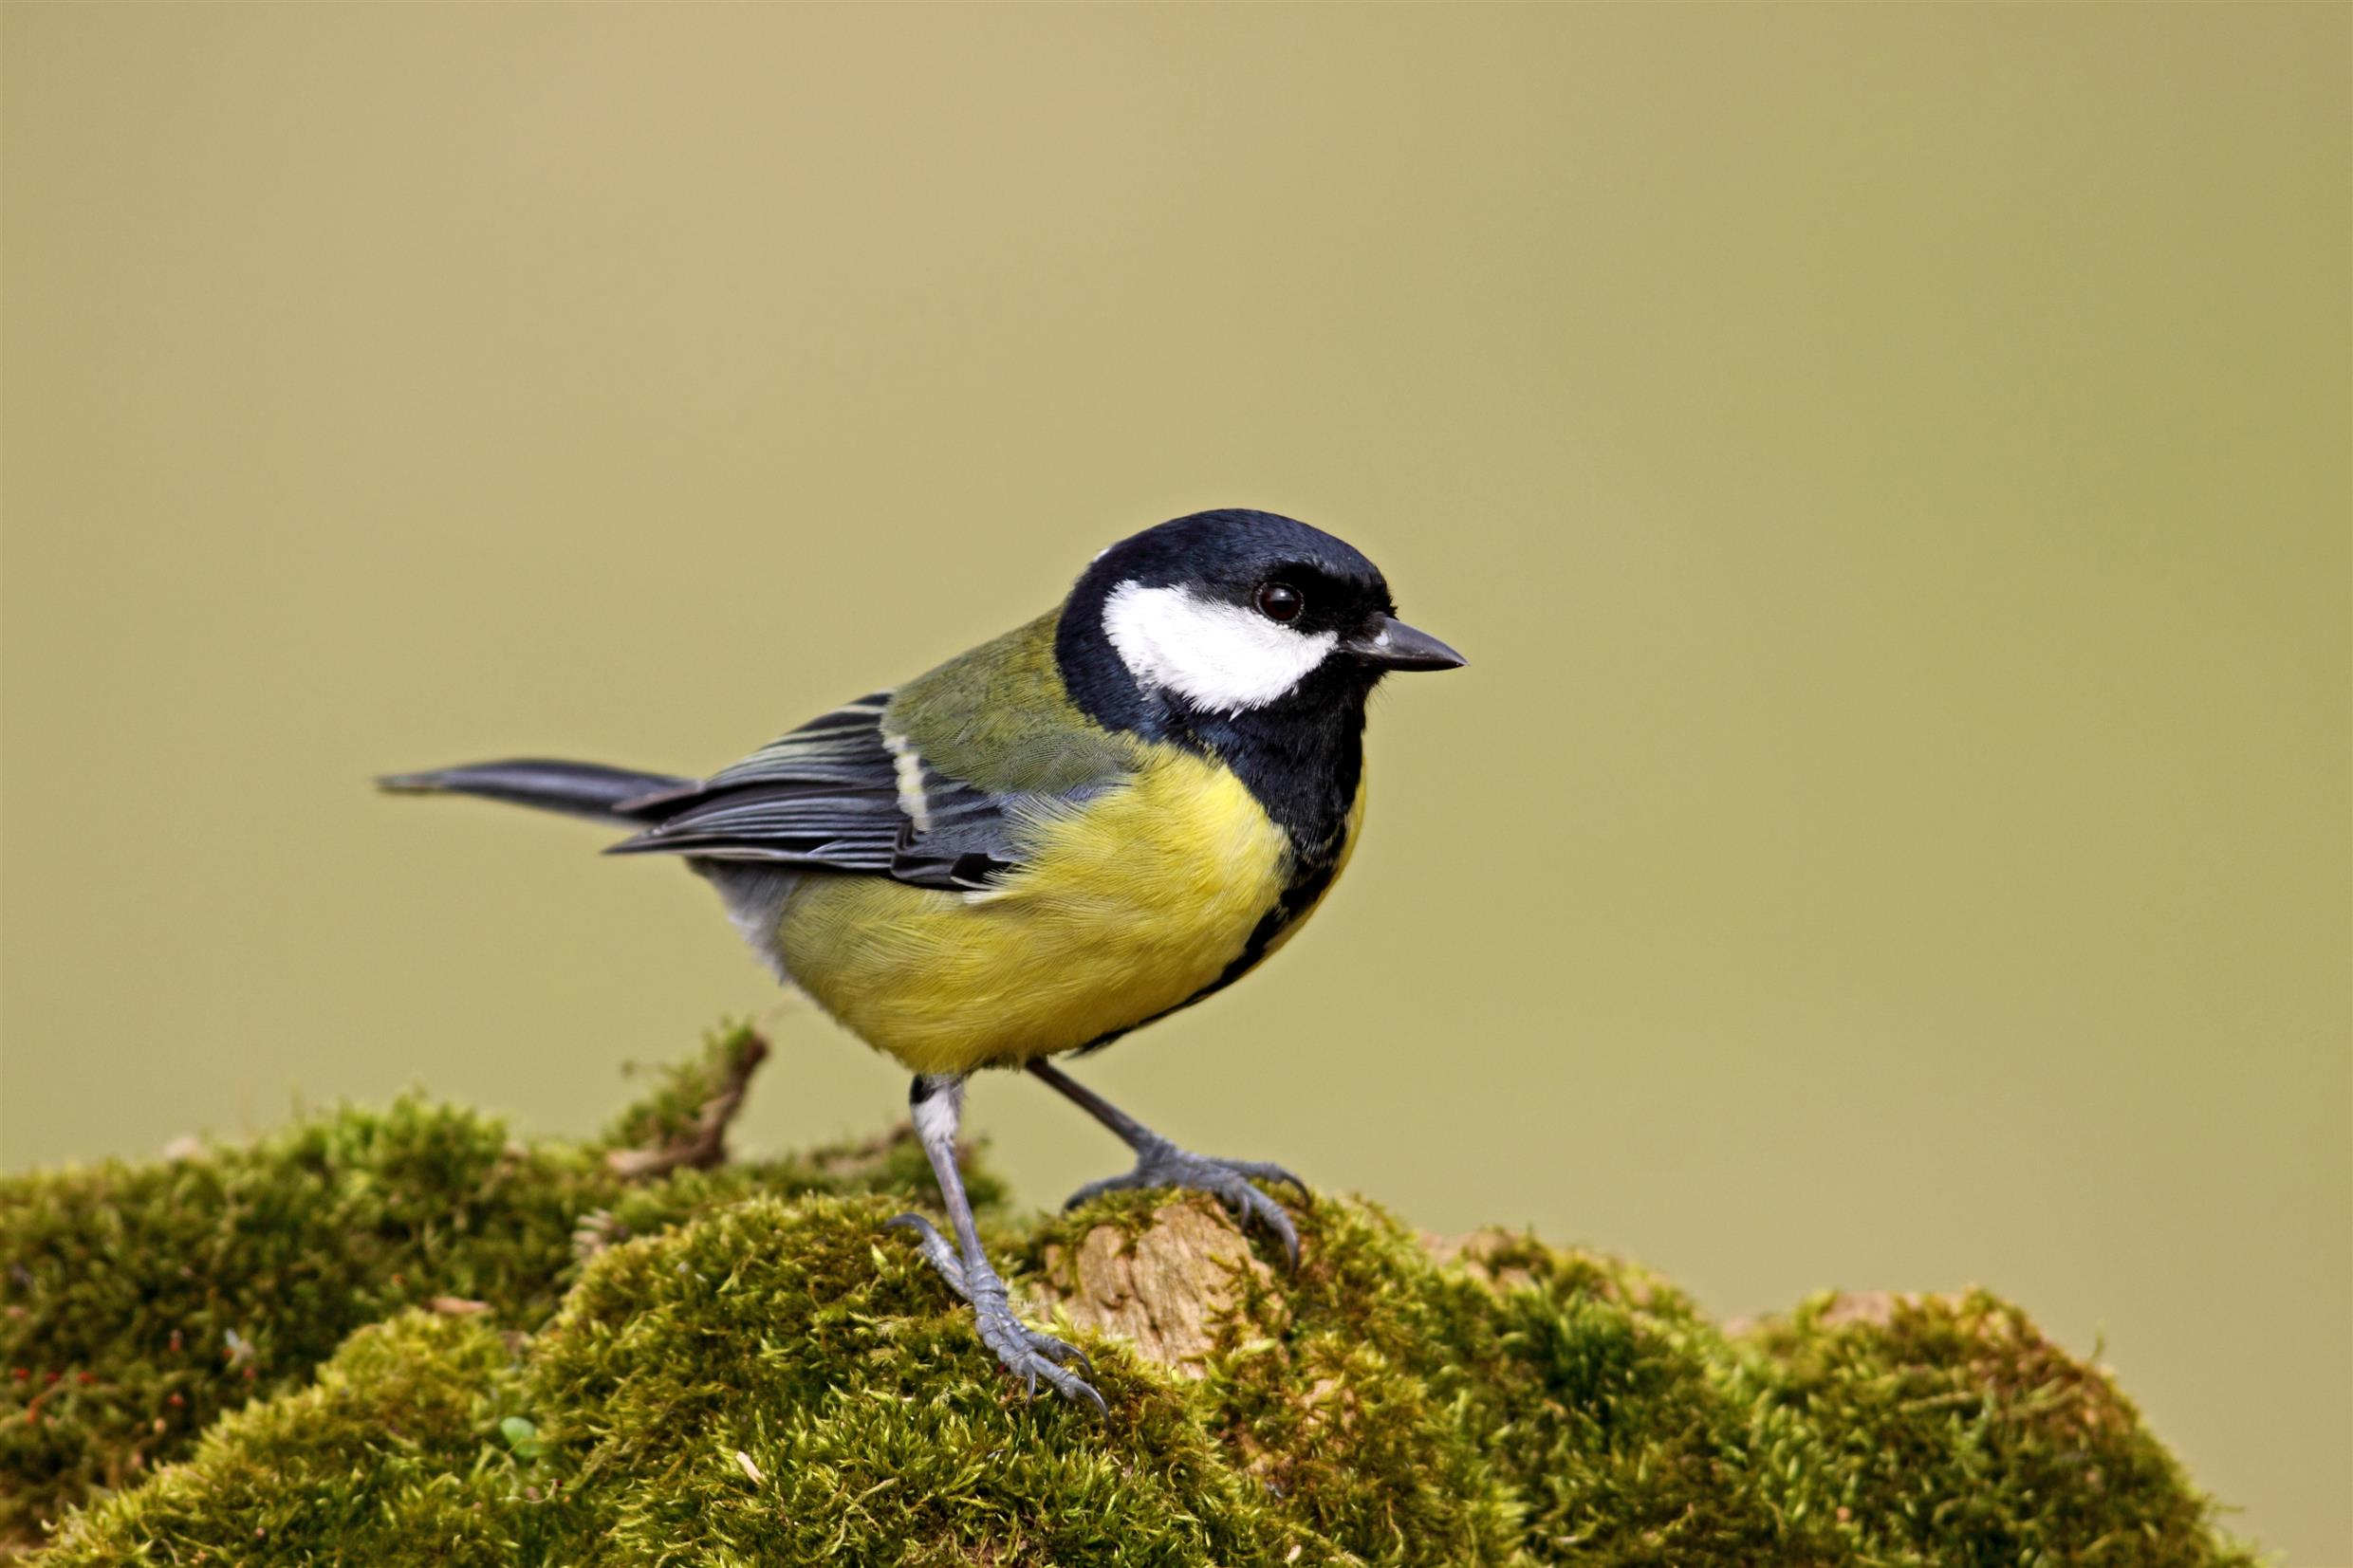 RSPB great tit